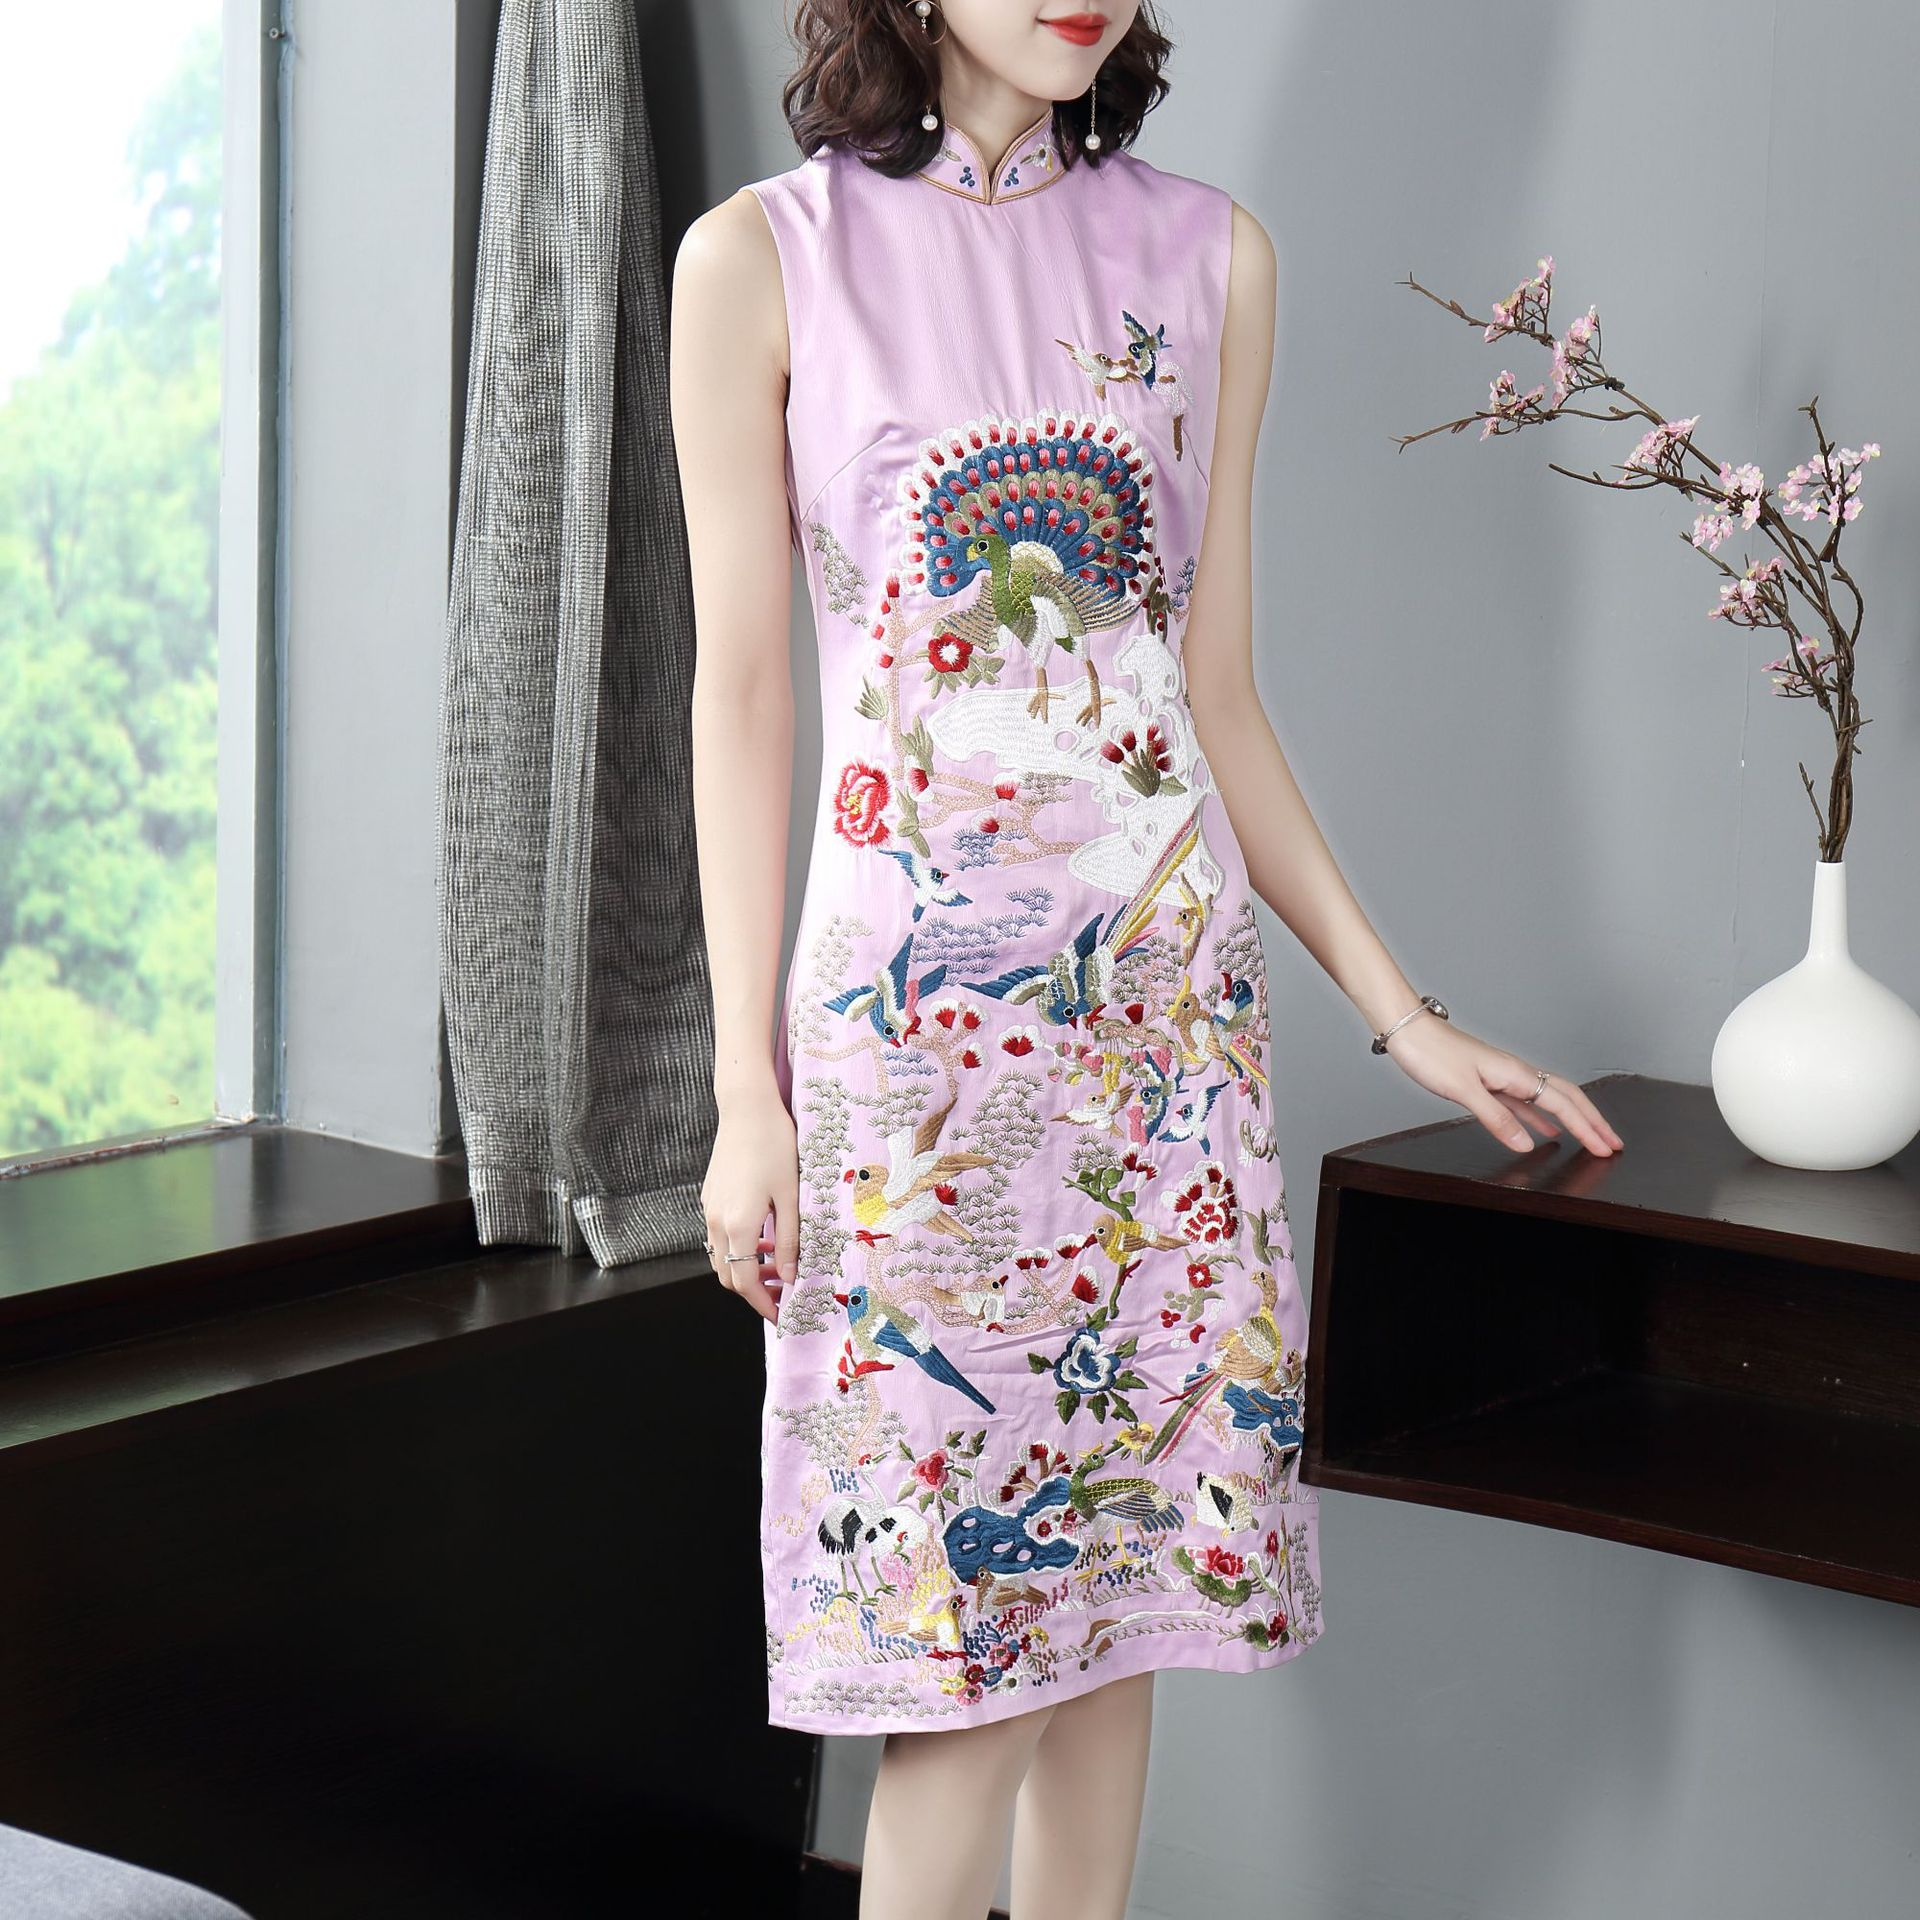 2020 Evening Party Cheongsam Embroidery Sleeveless Dress Chinese Evening Dresses Long Qipao Party Dress Embroidery Cheongsam